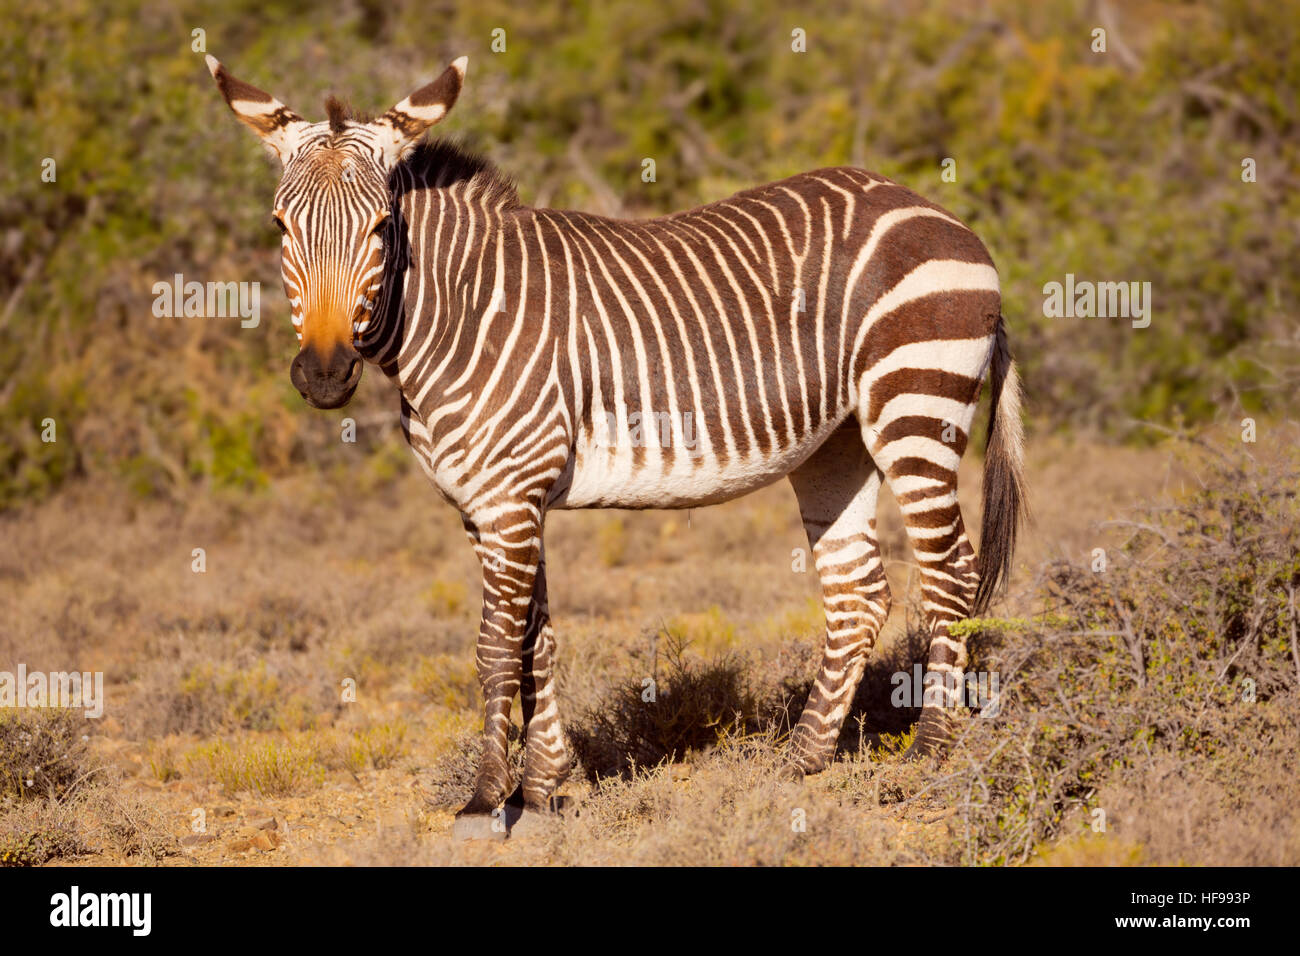 A Cape mountain zebra in Karoo National Park in South Africa. - Stock Image